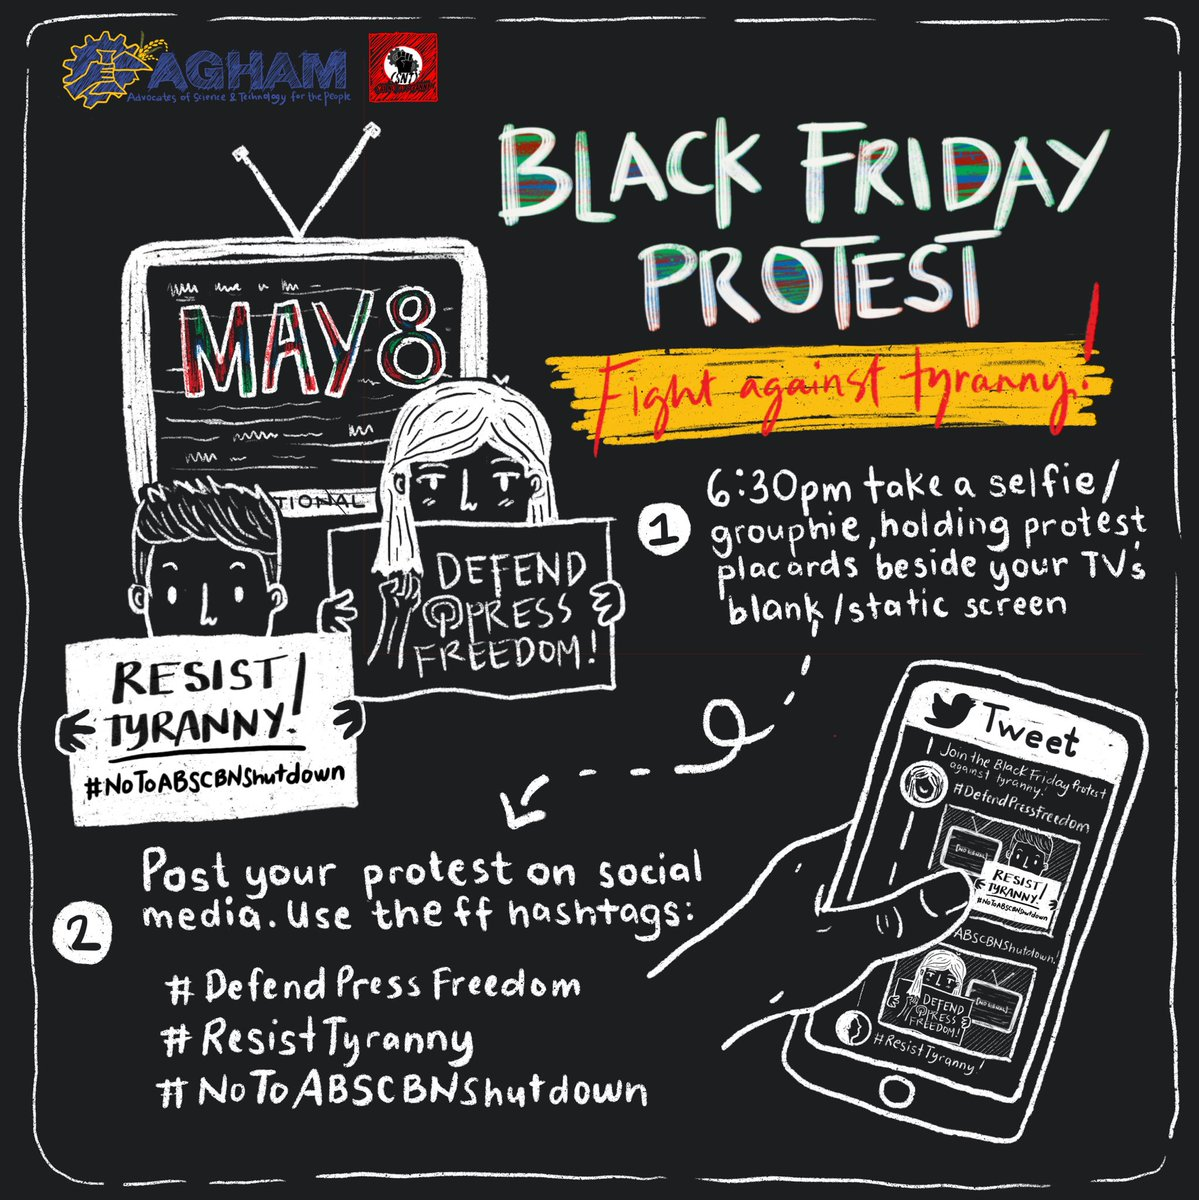 Tom (May 8) | 6:30pm onwards, let's drum our calls for freedom and democracy as we join the the #BlackFridayProtest against tyranny.   #DefendPressFeedom #ResistTyranny  #NoToABSCBNShutDownpic.twitter.com/ueNdNbrHAe